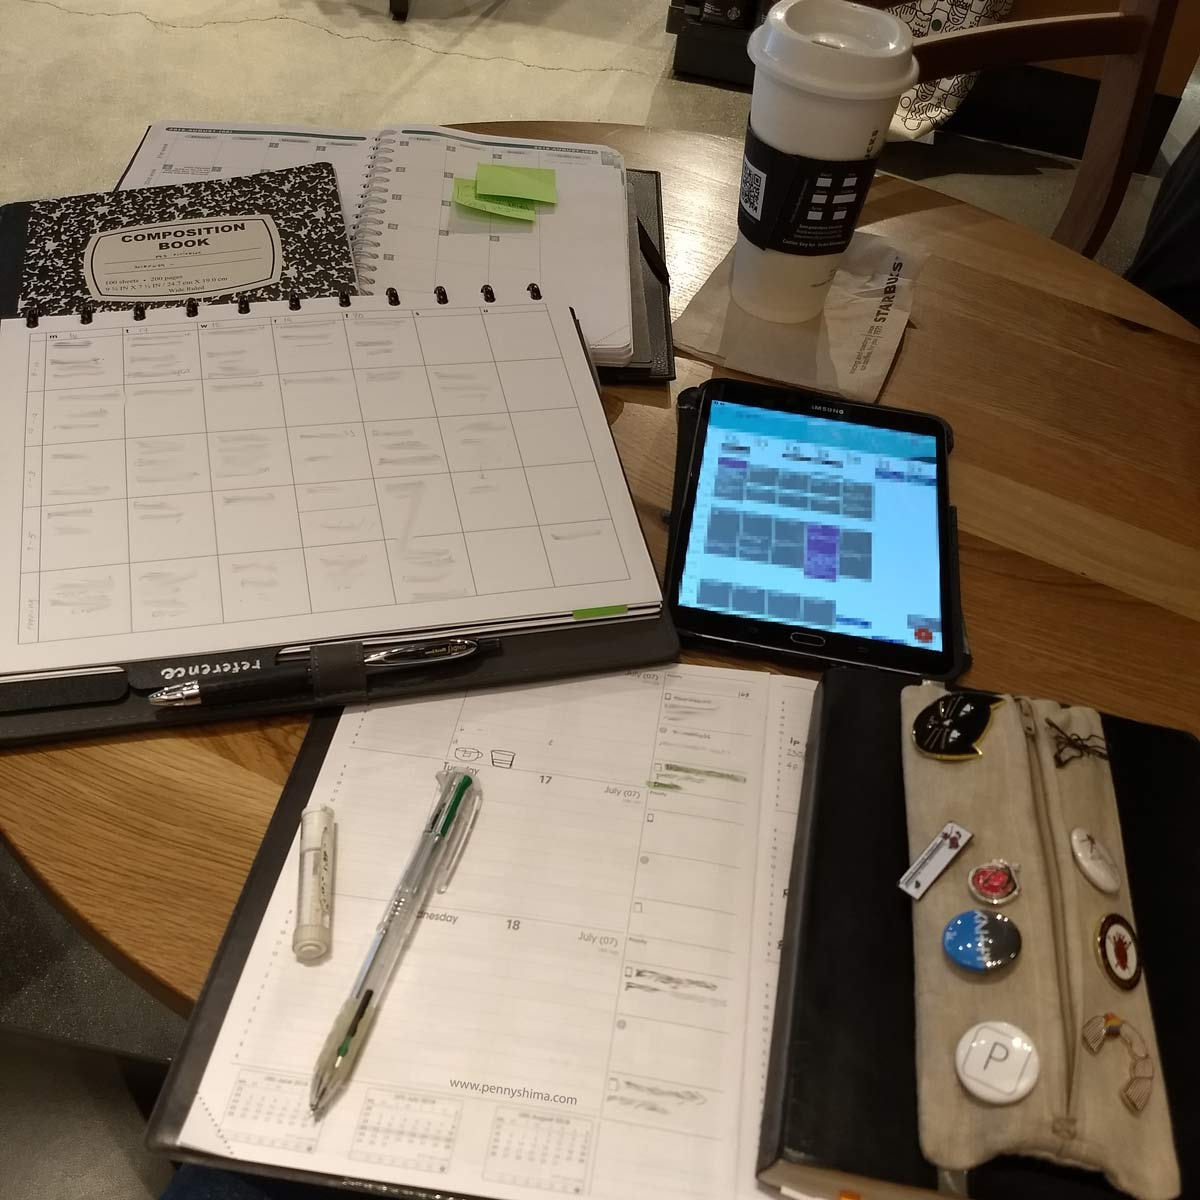 QV Principal, penat.work planning grid, tablet, rhodia goal book, composition book, and Life Noted planner